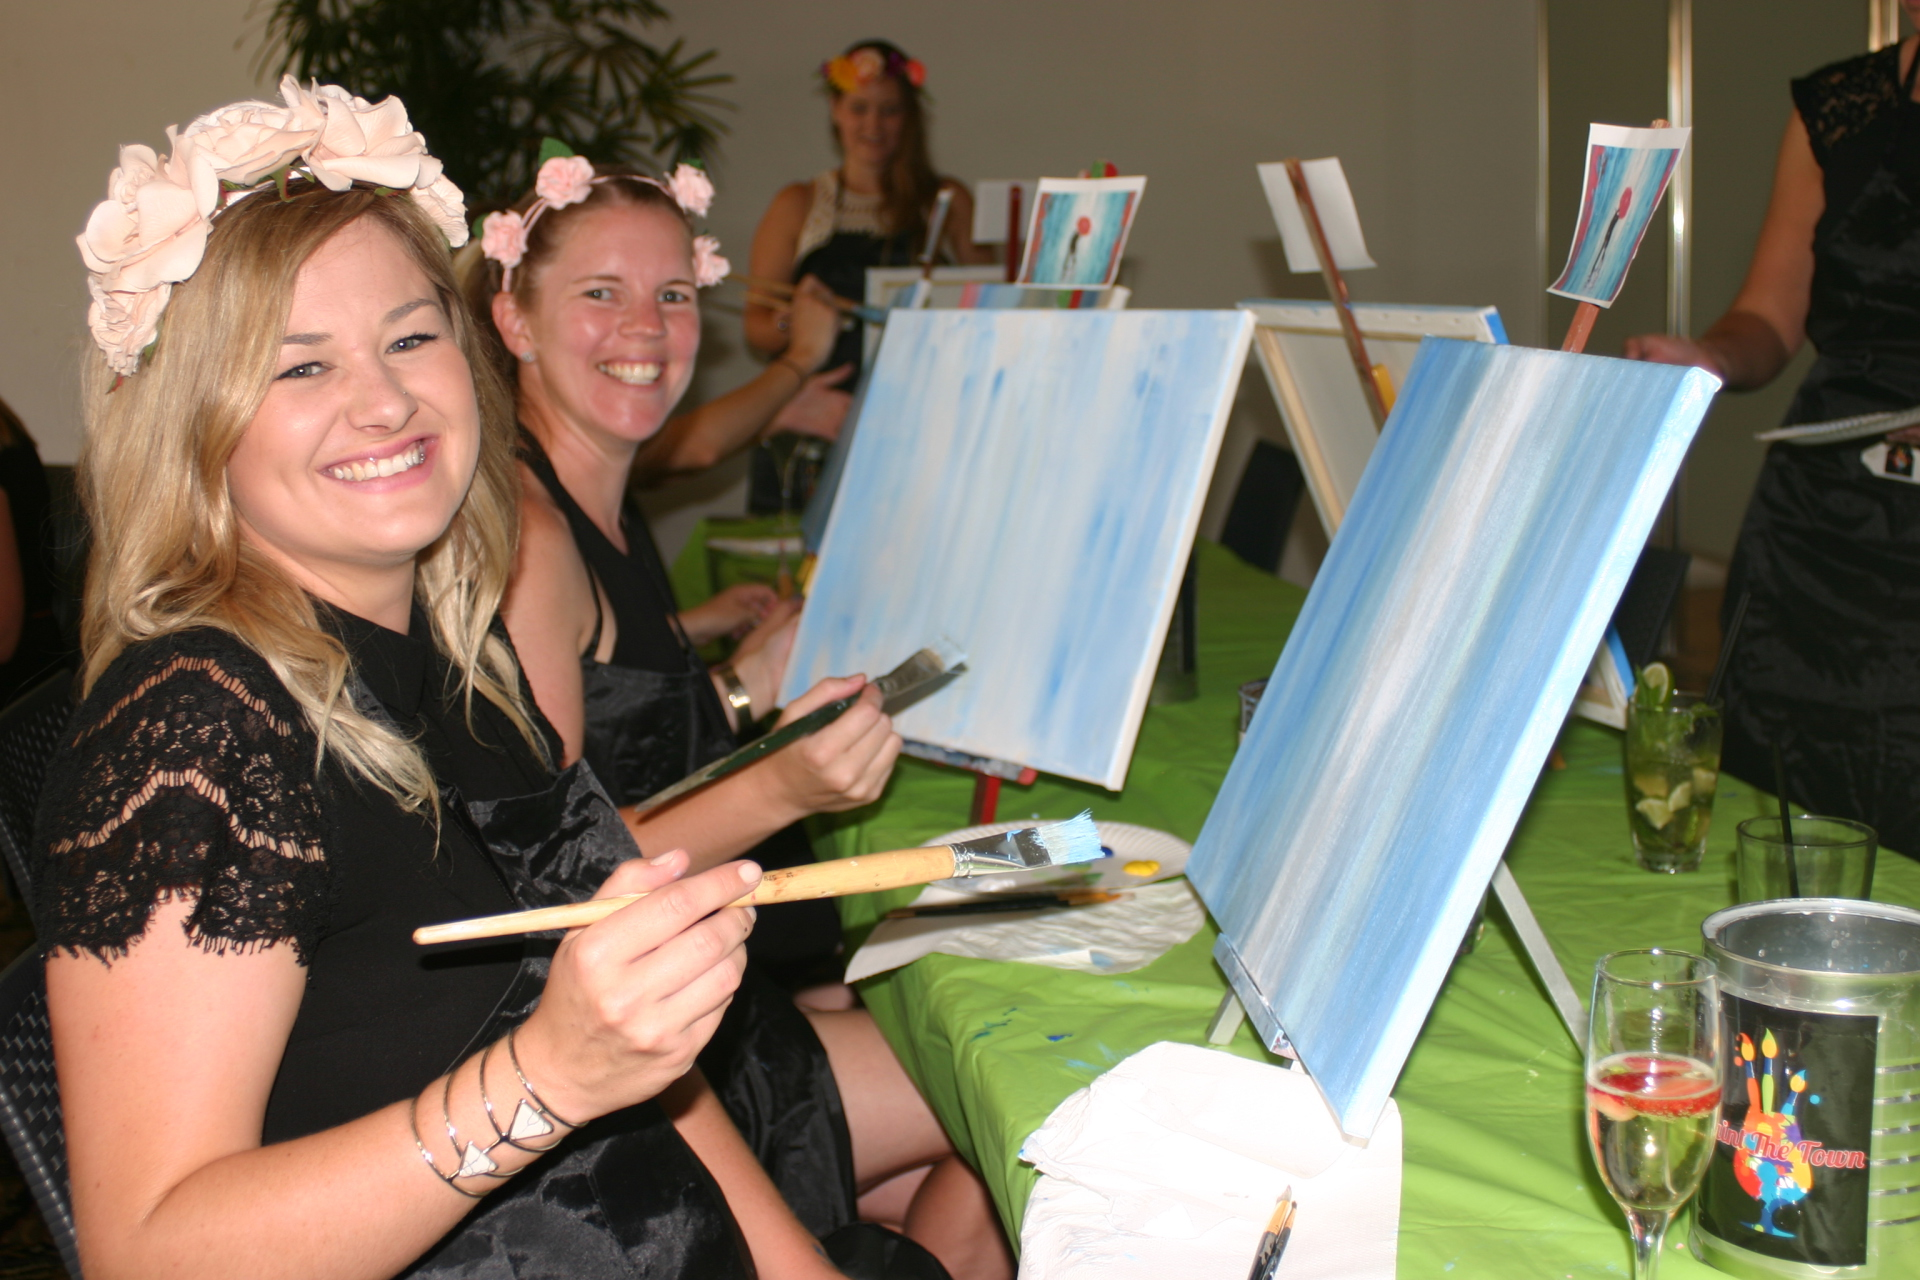 paint, paint and sip, paint party, paint class, fun, hens night, birthdays